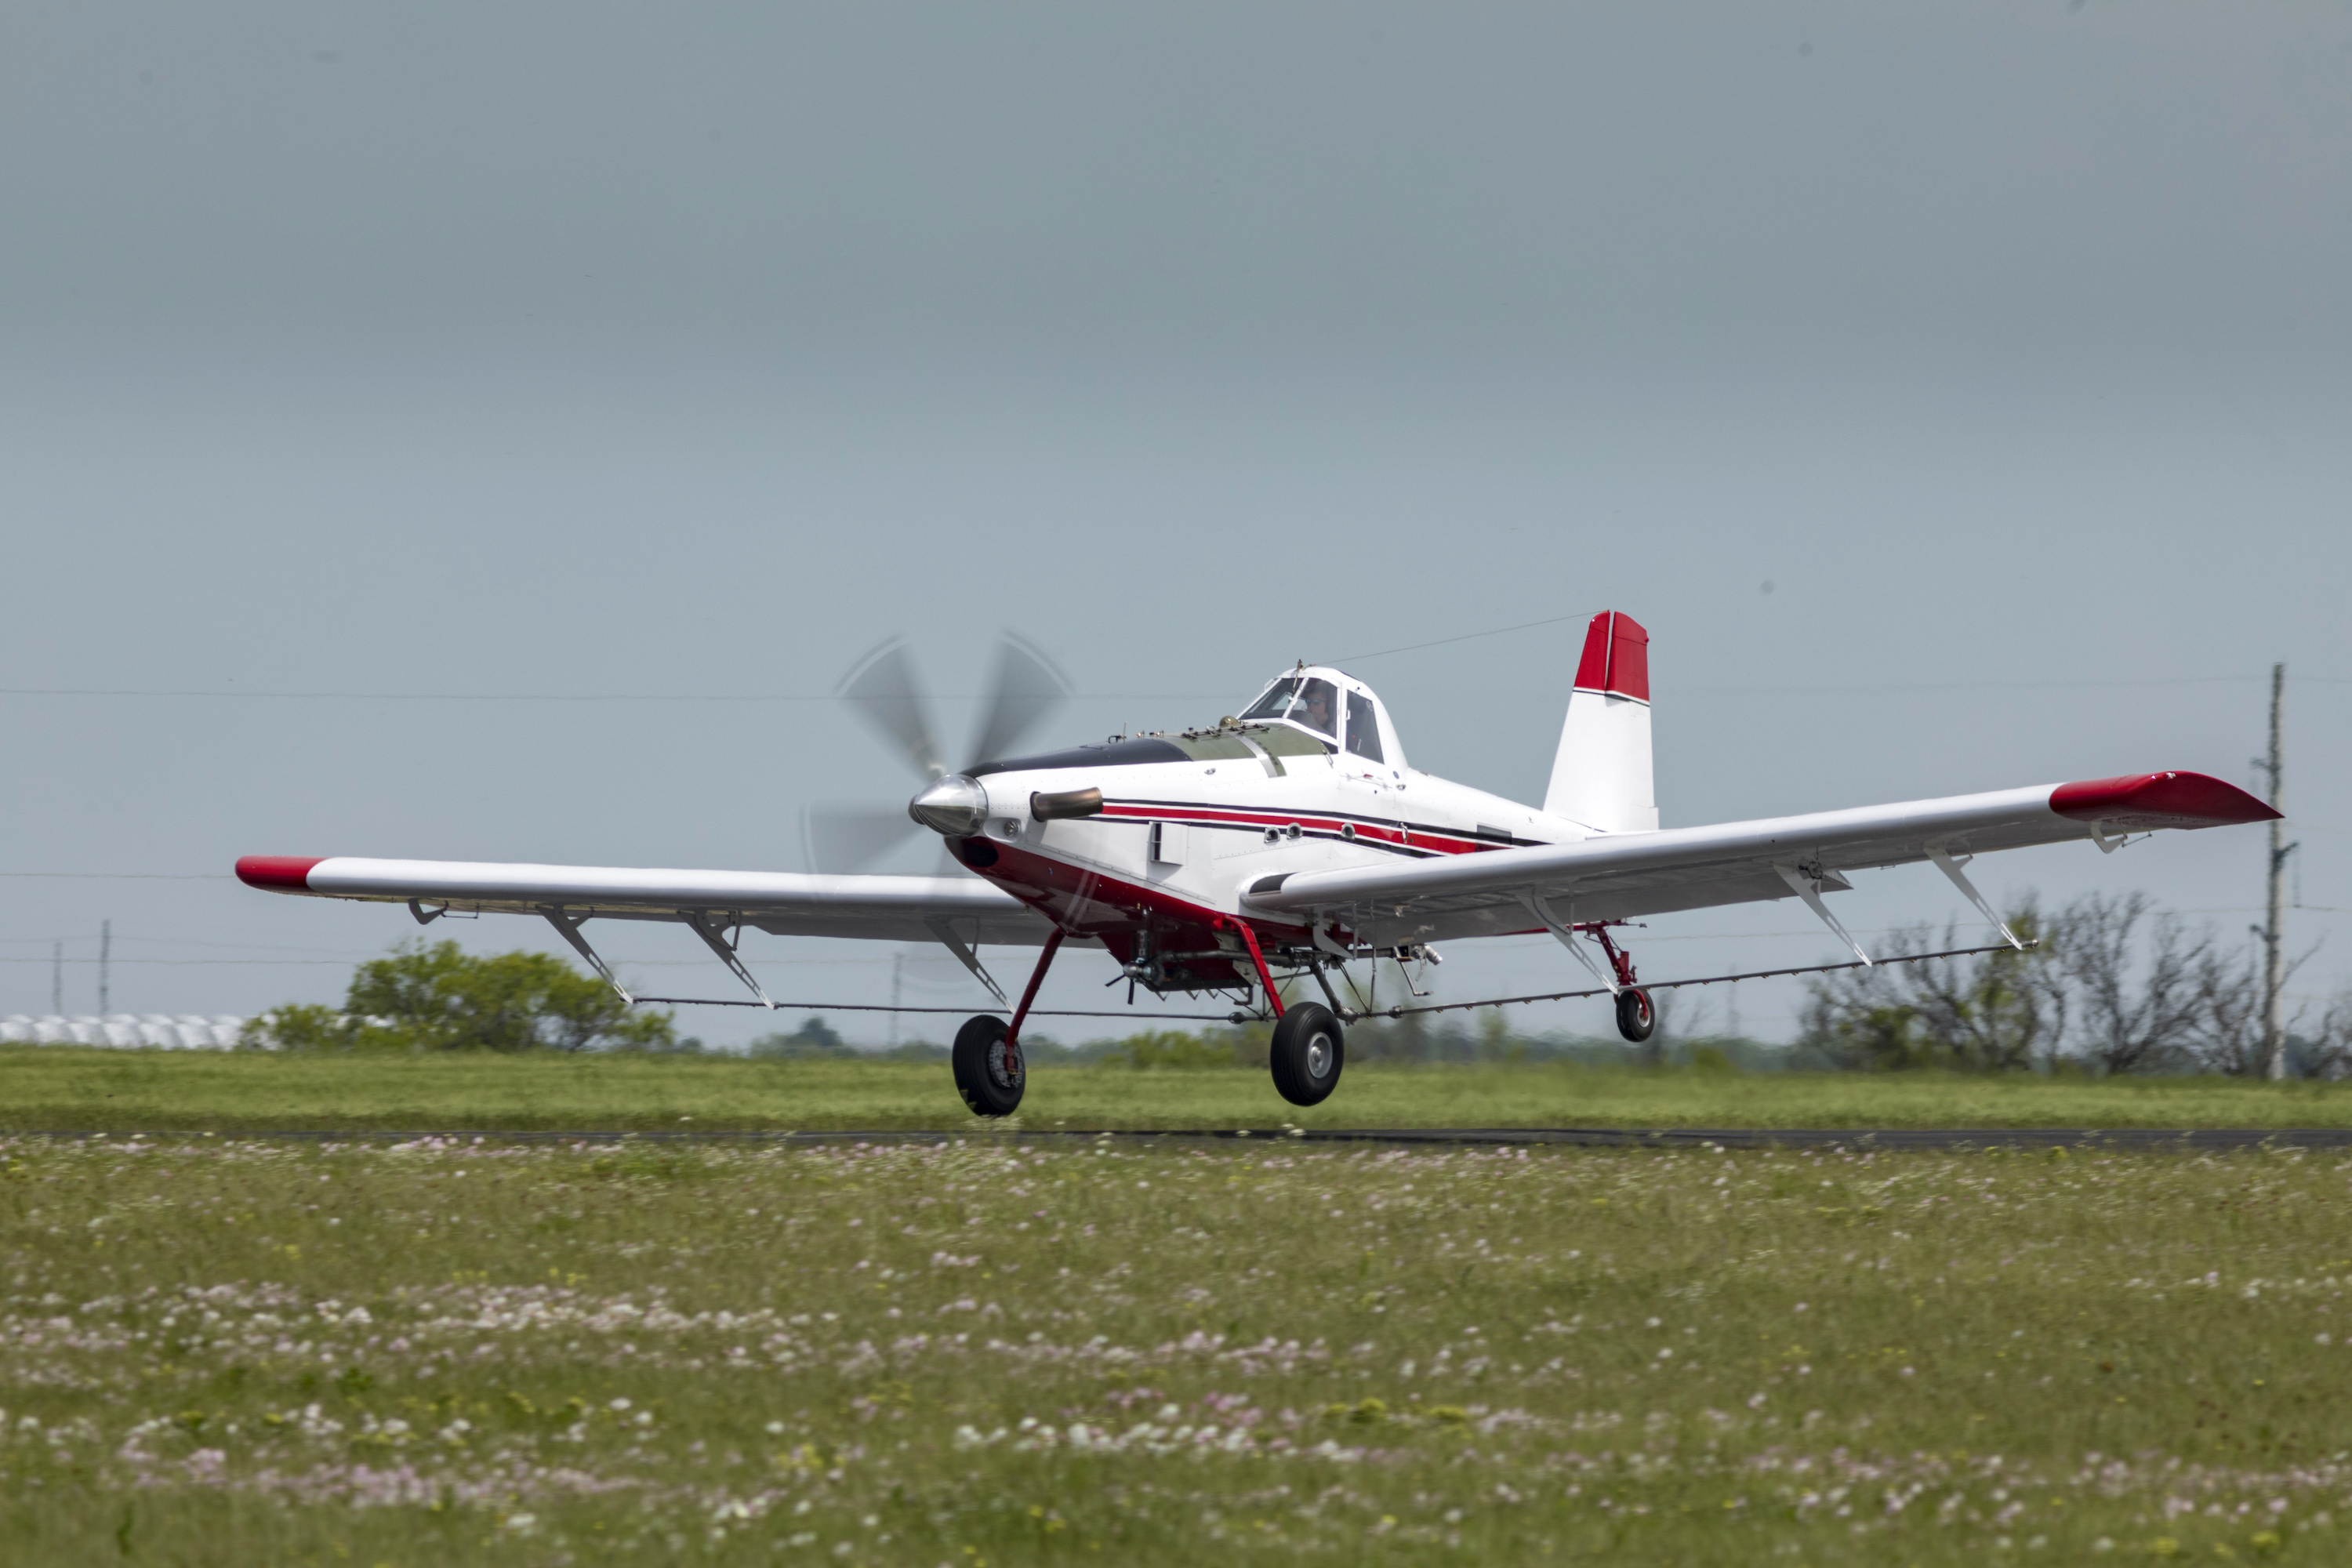 Air Tractor Releases 800th Aircraft in AT-802 Series - Air Tractor